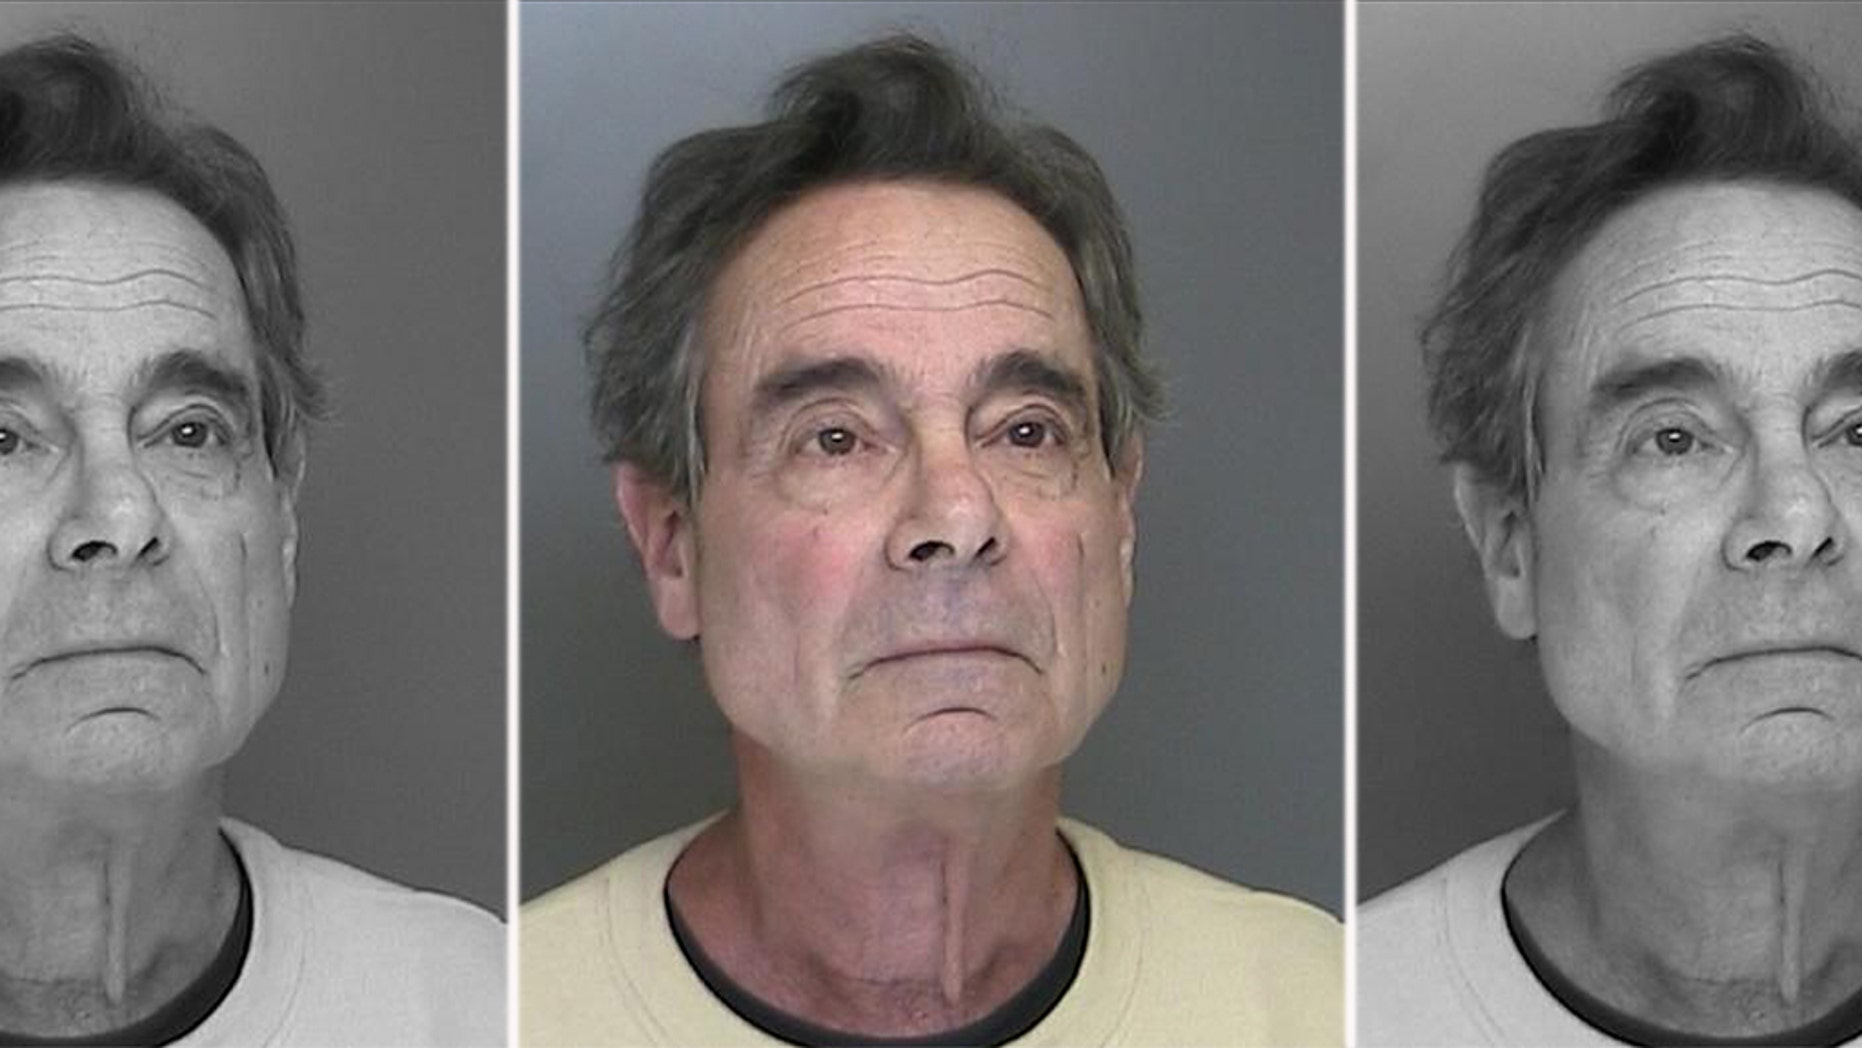 Ronald DeRisi, 74, of Smithtown, N.Y., was charged Friday with threatening federal officials.